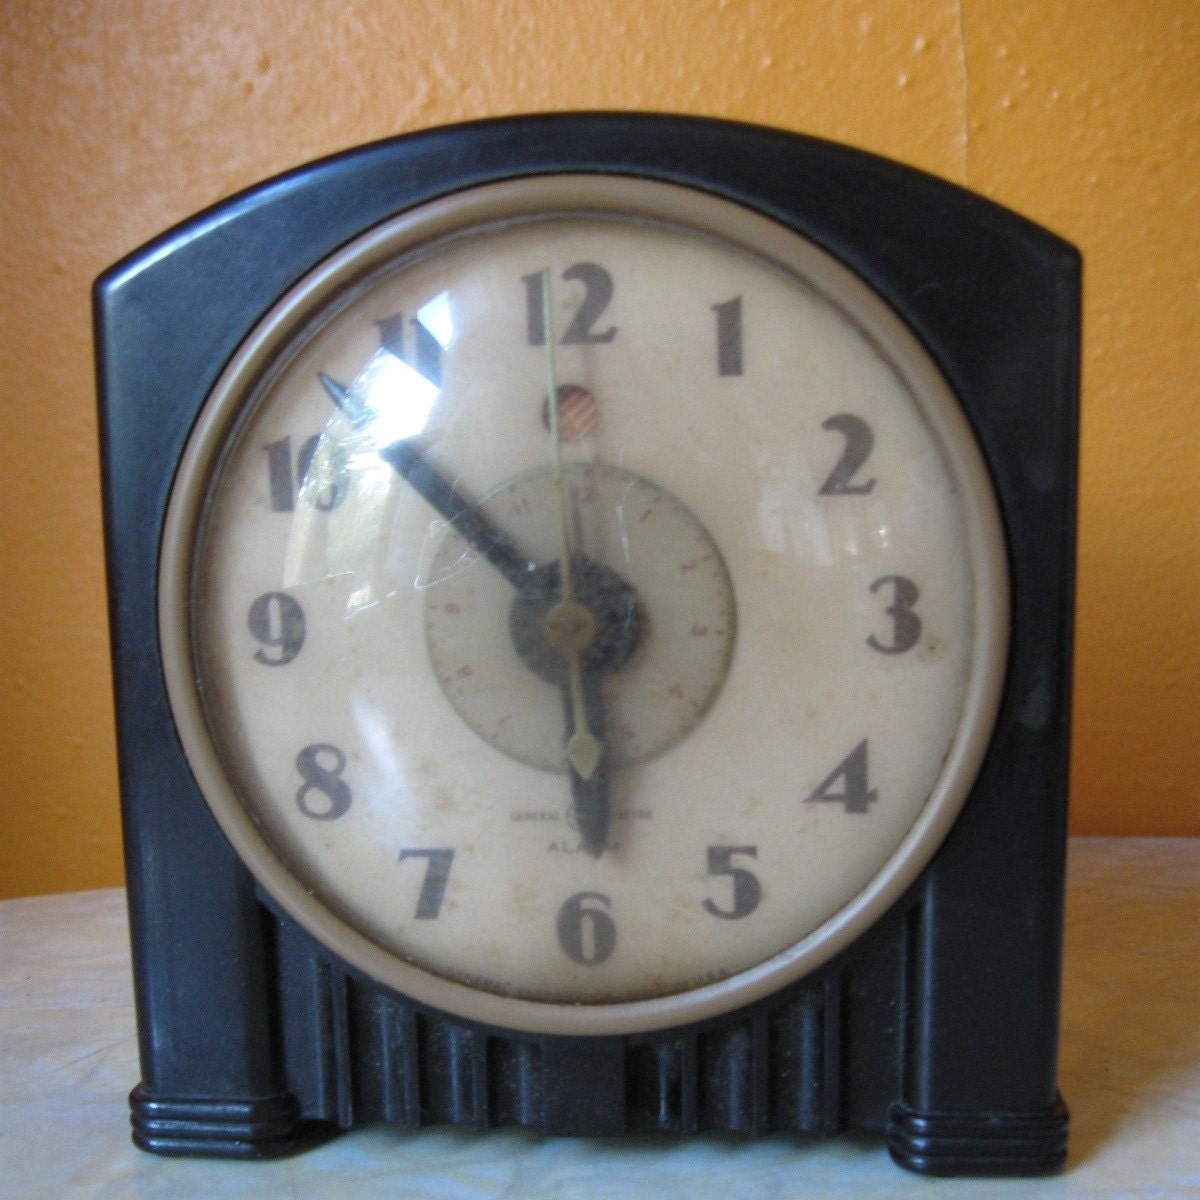 Art Deco Bakelite Alarm Clock Vintage General By Retro2gogo: art deco alarm clocks